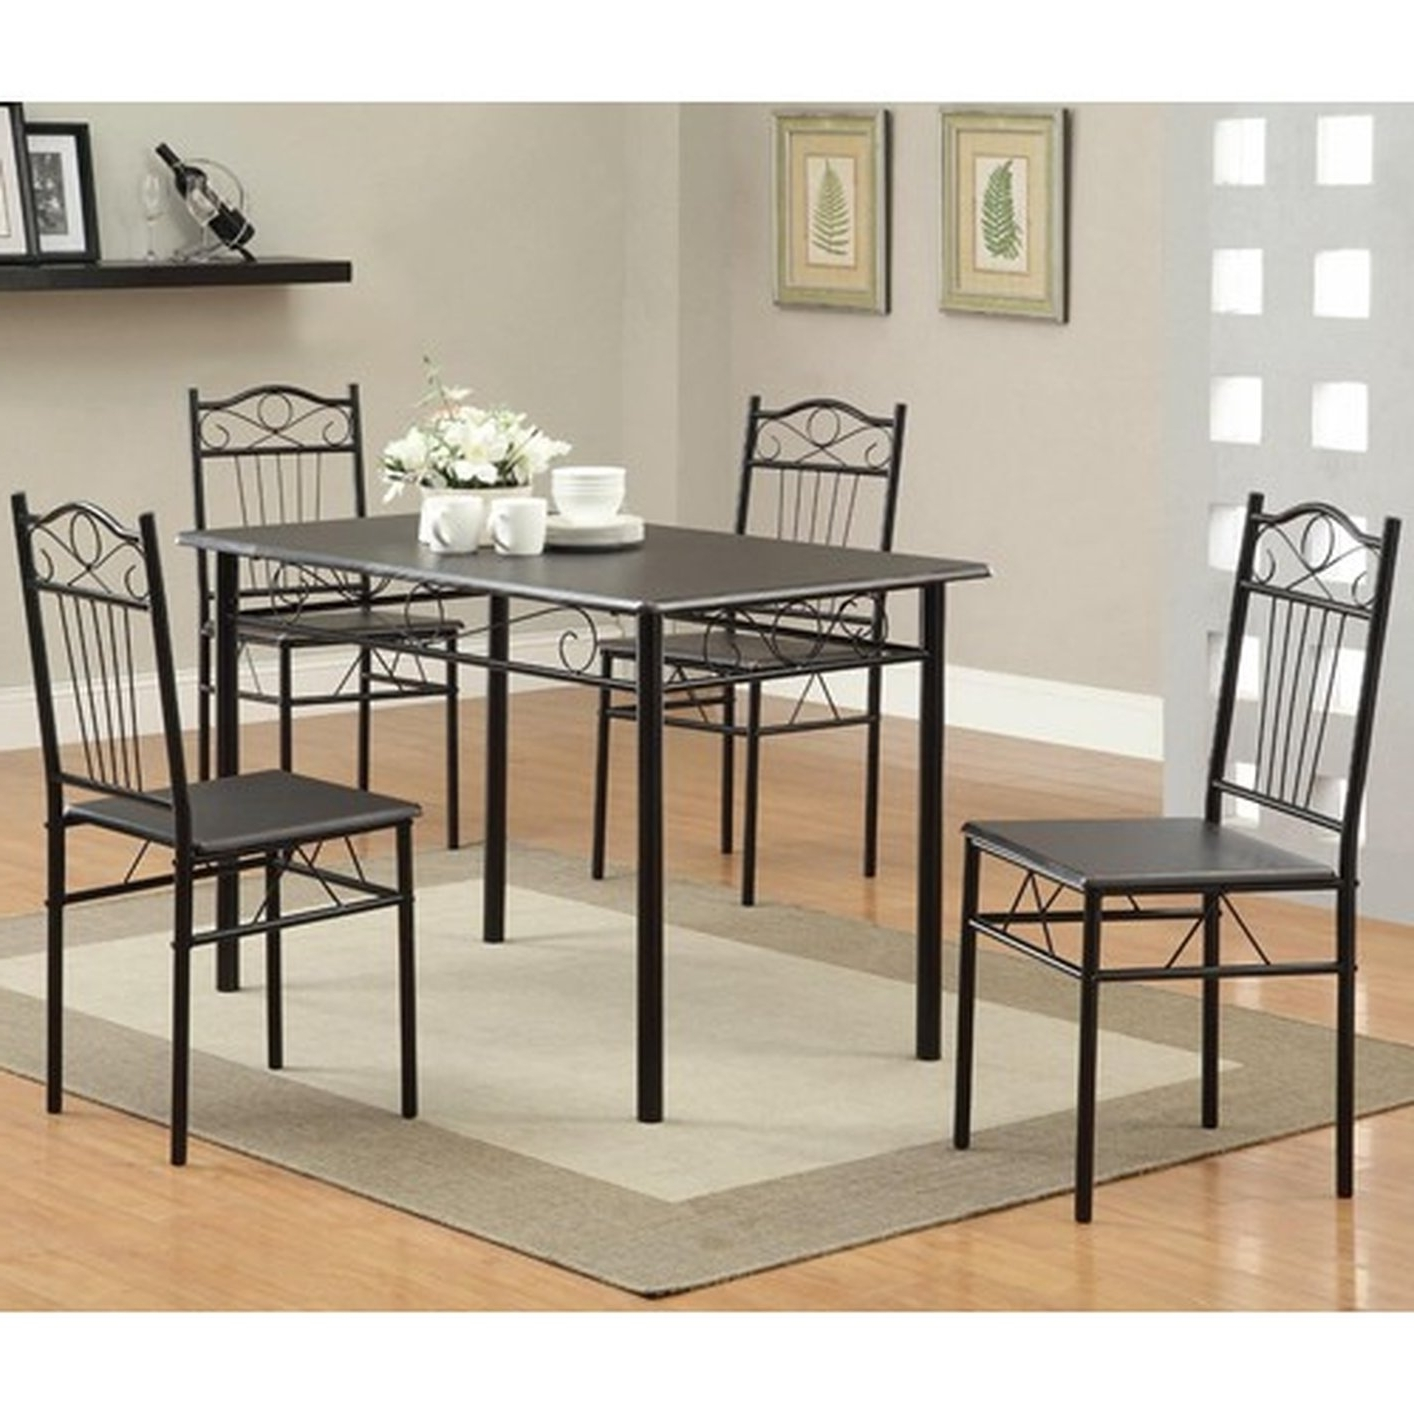 Dining Table Chair Sets Intended For Most Up To Date Black Metal Dining Table And Chair Set – Steal A Sofa Furniture (View 13 of 25)